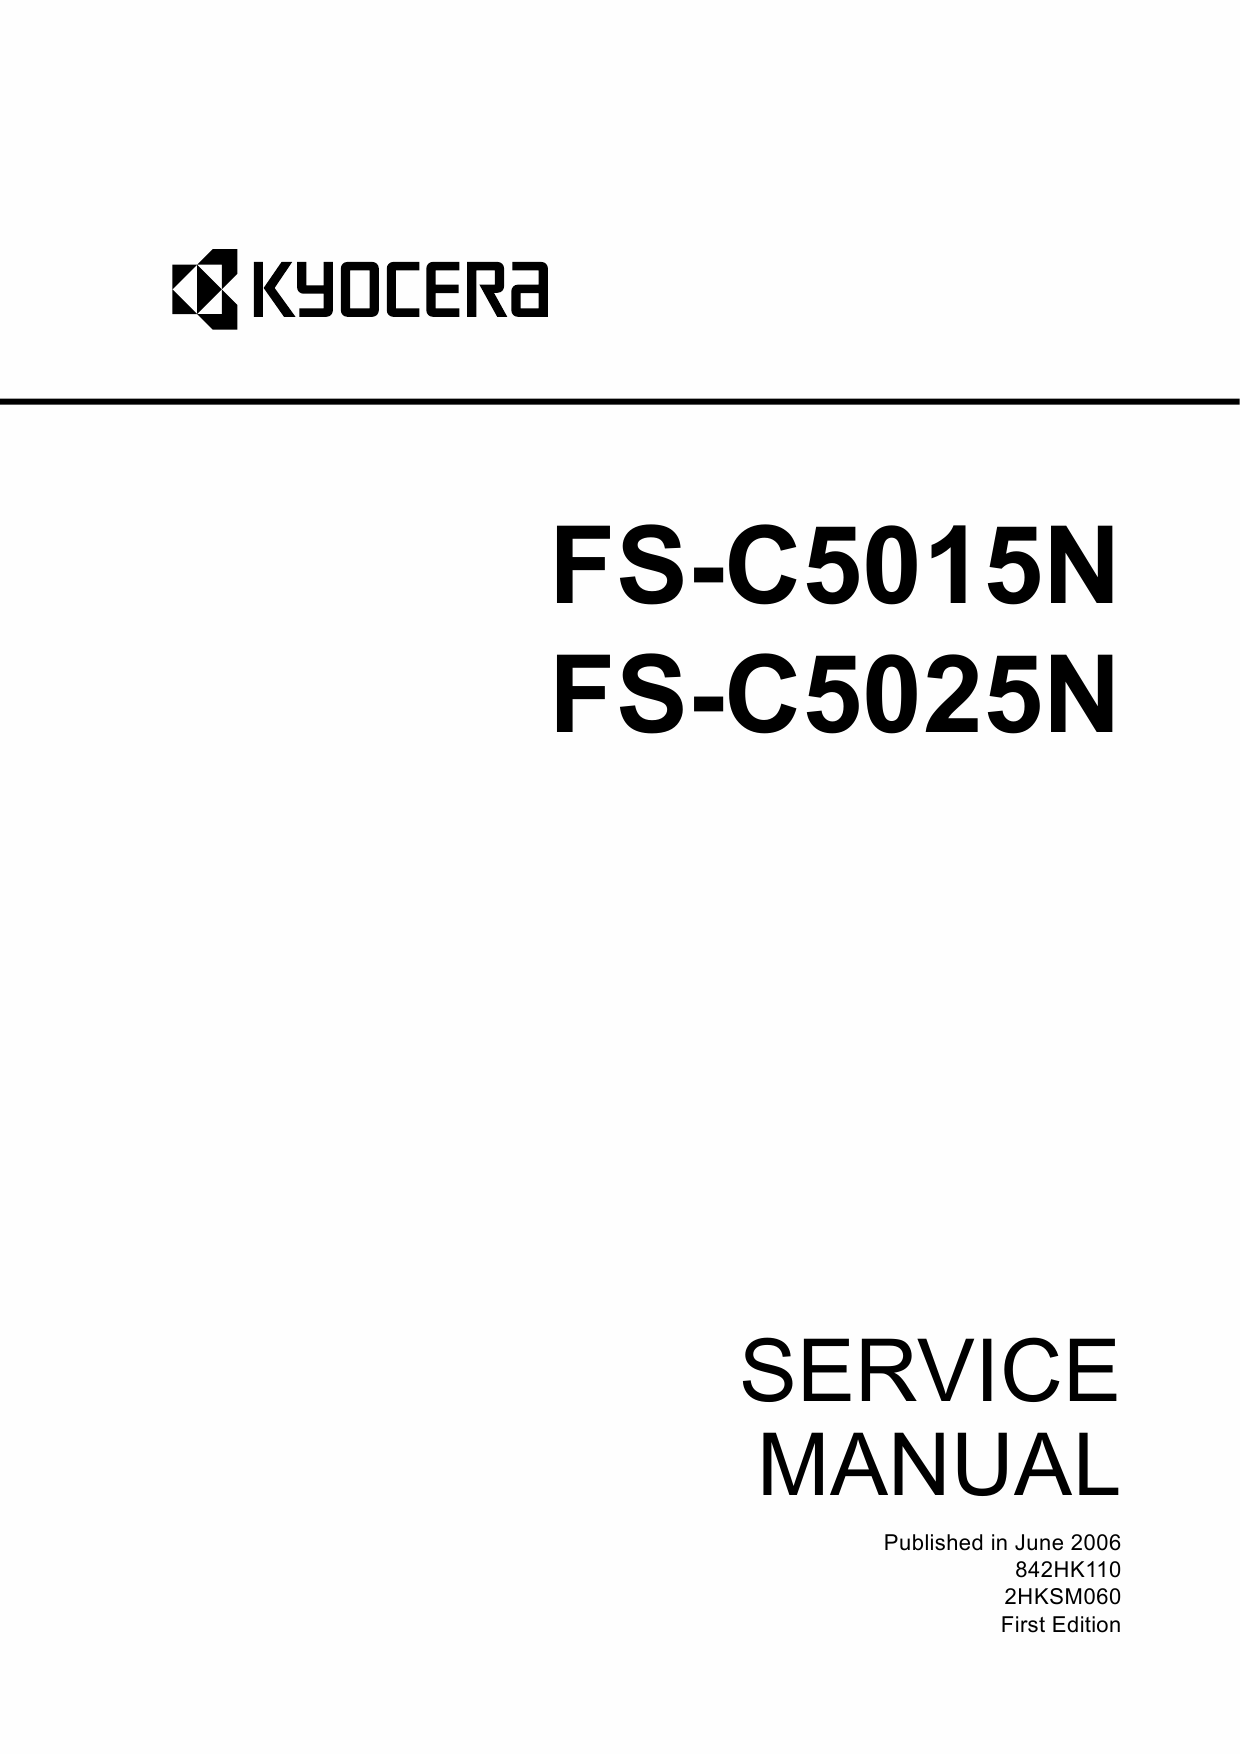 KYOCERA ColorLaserPrinter FS-C5015N C5025N Service Manual-1